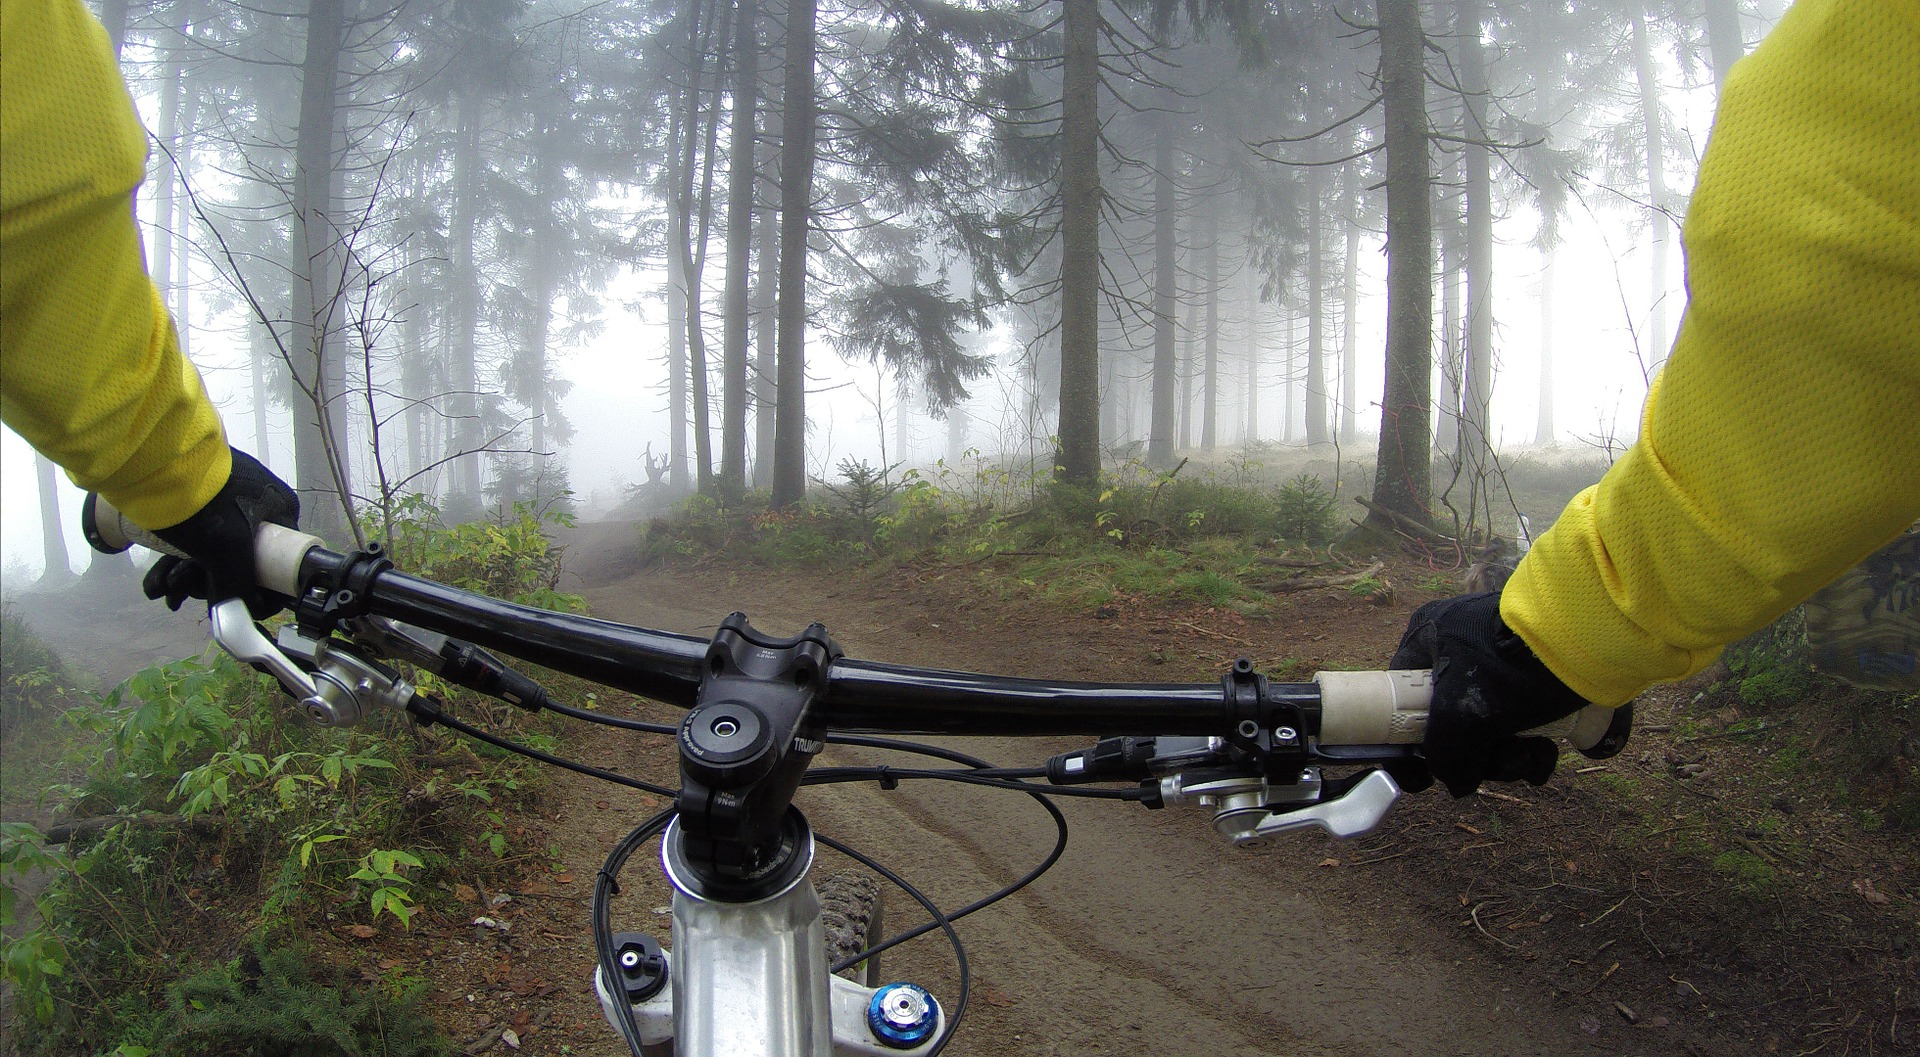 a biker wearing the best cycling gloves while riding a bike through the woods